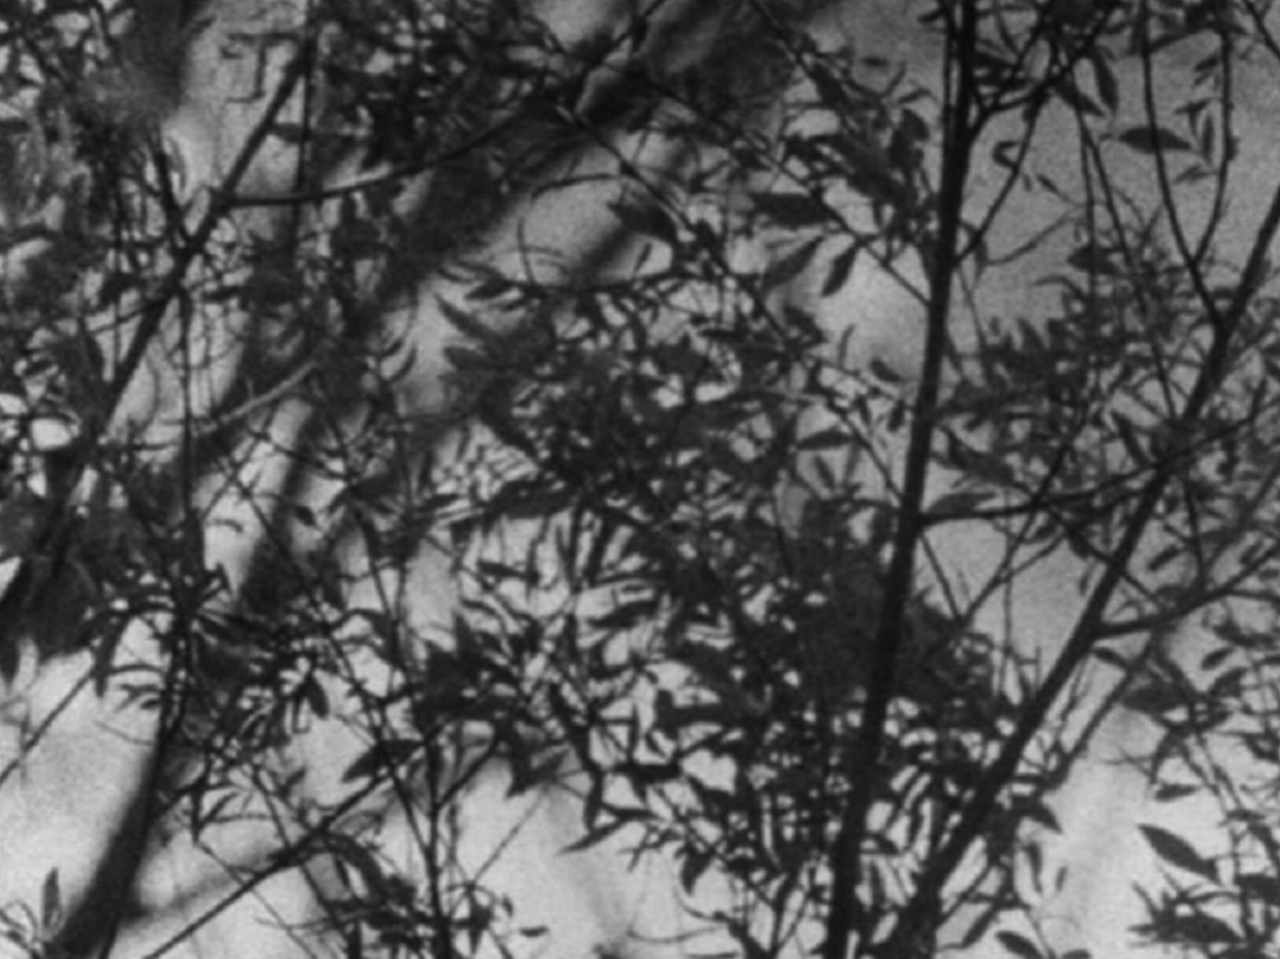 Filter Beds  Guy Sherwin  1998 / 9 minutes / UK / 16mm / silent  A delicate study of a tangle of scrub and trees. A very shallow depth of field causes branches and stalks of wild grasses to emerge and disappear as Sherwin racks focus, settling on the jet planes sweeping across an impossibly distant sky. The soft rich grain of the muted image lends it a dreamlike timelessness. -Brian Frye